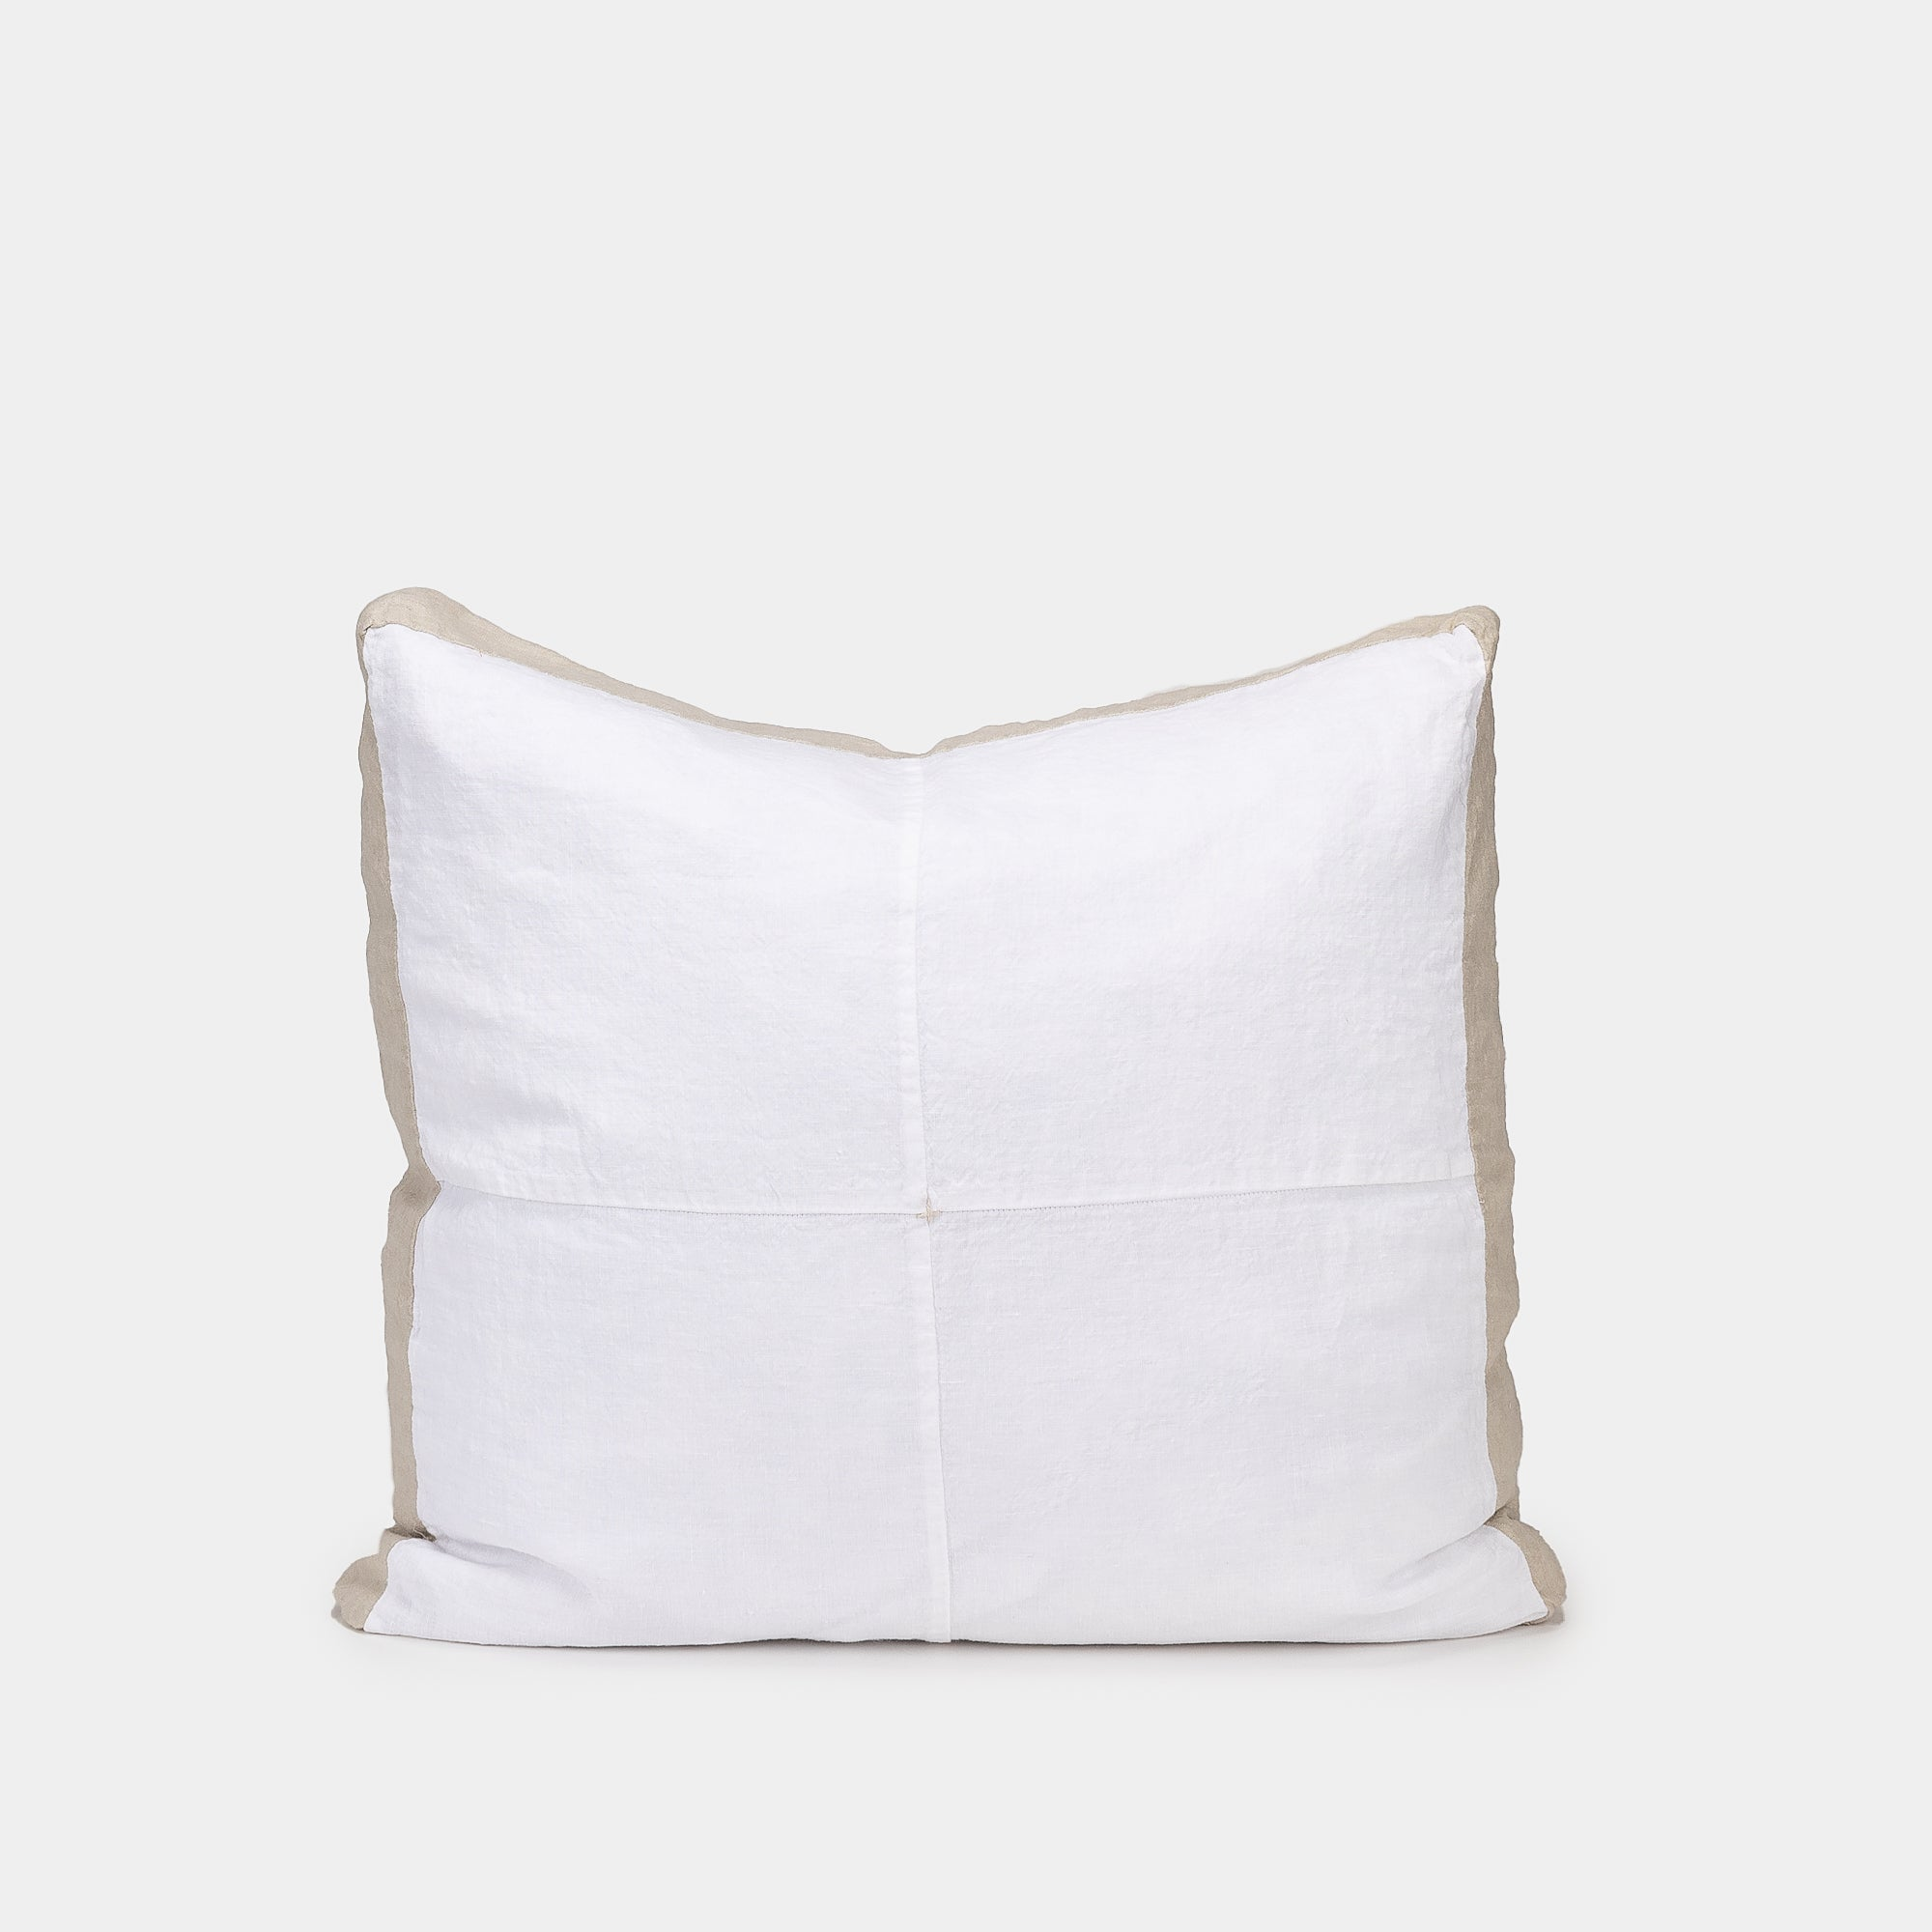 Basix Linen Panel Pillow Ayrton/Sable 20x20